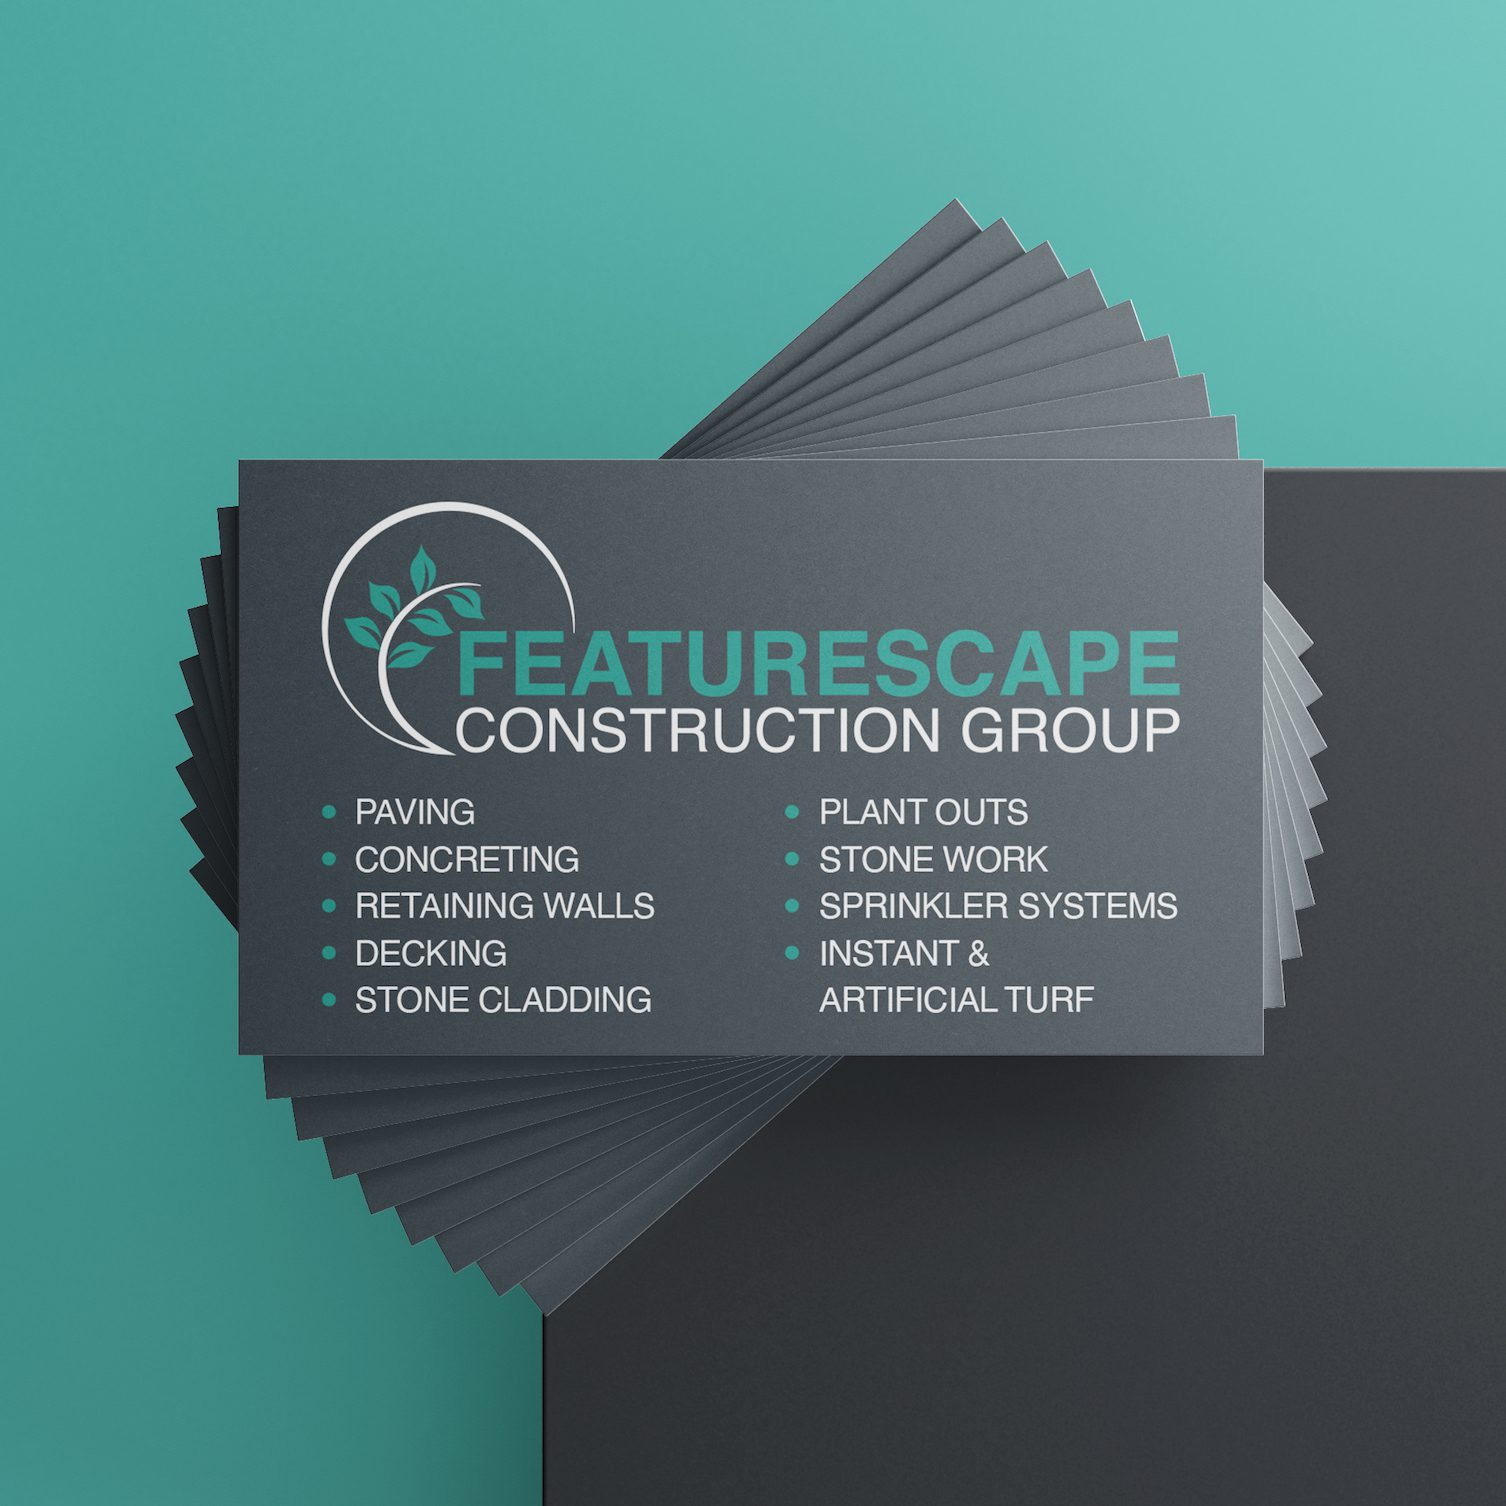 Featurescape Construction Group Landscaping Business Logo and Cards by Spacey Studios